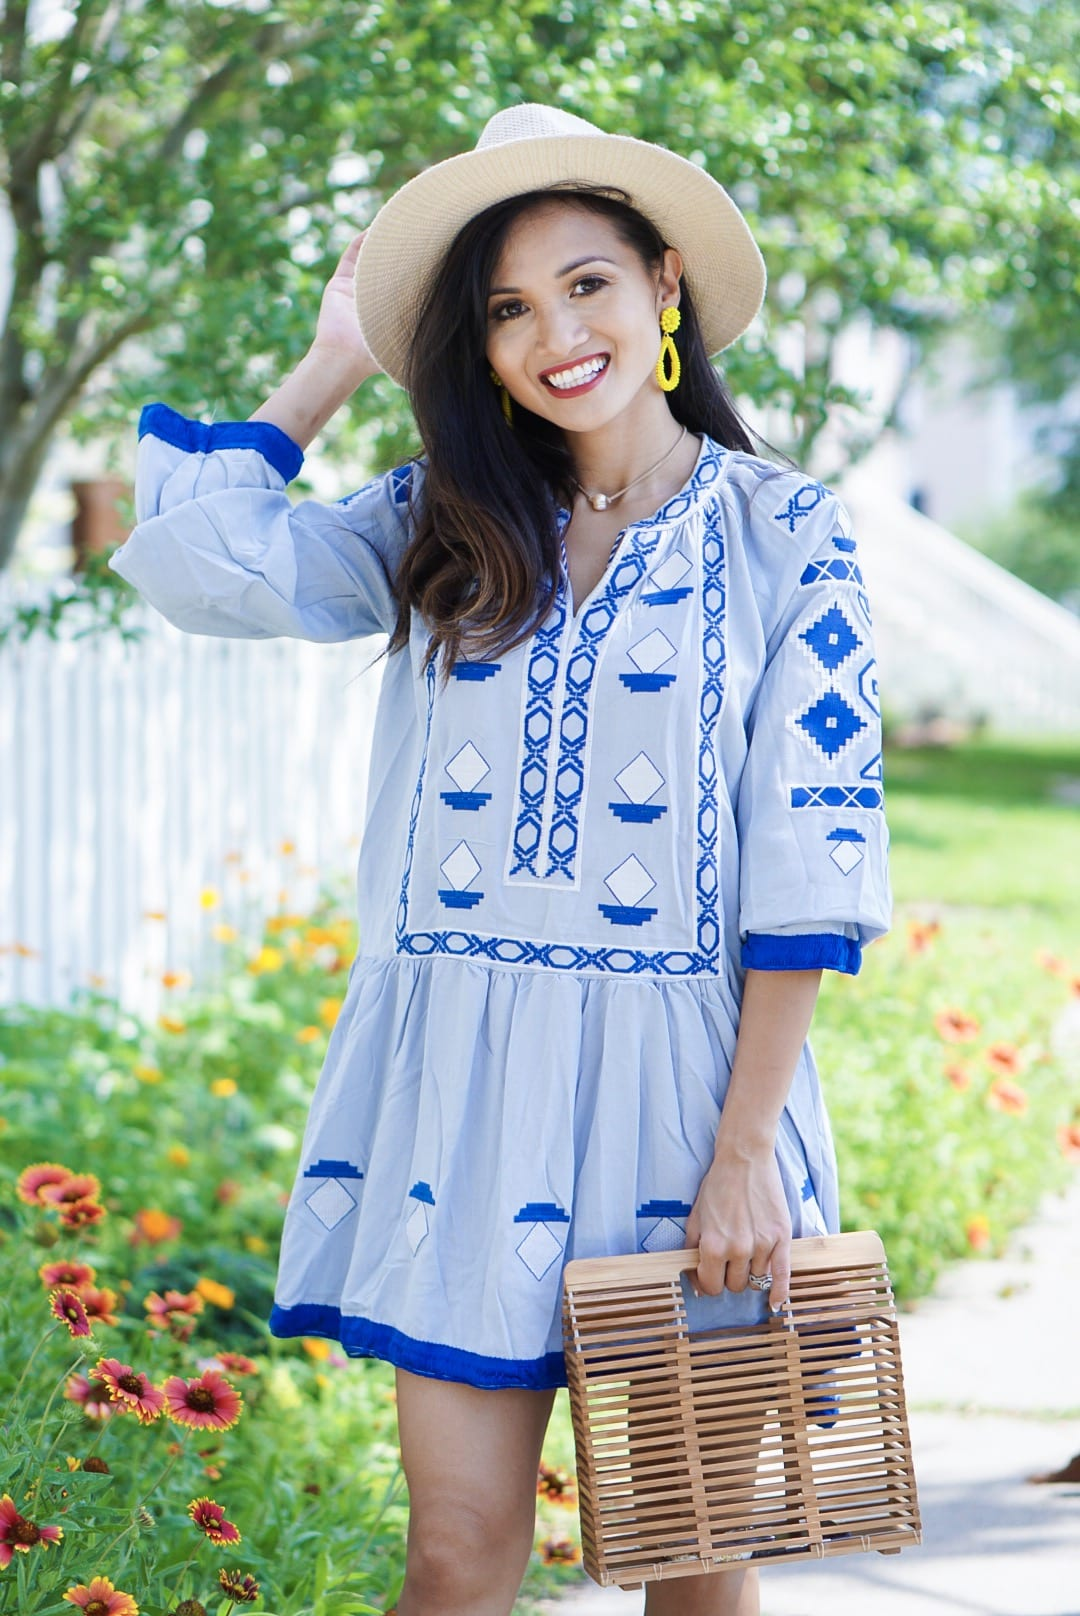 #springstyle #springfashion #summerdress #summerfashion, chicwish, Jeffrey Cambell Rodillo wedges, embroidered dress, bamboo bag, #ltkunder50, #liketoknow.it, blogging tips, rewardstyle, blue dress, beach dress, Lisa Lerch